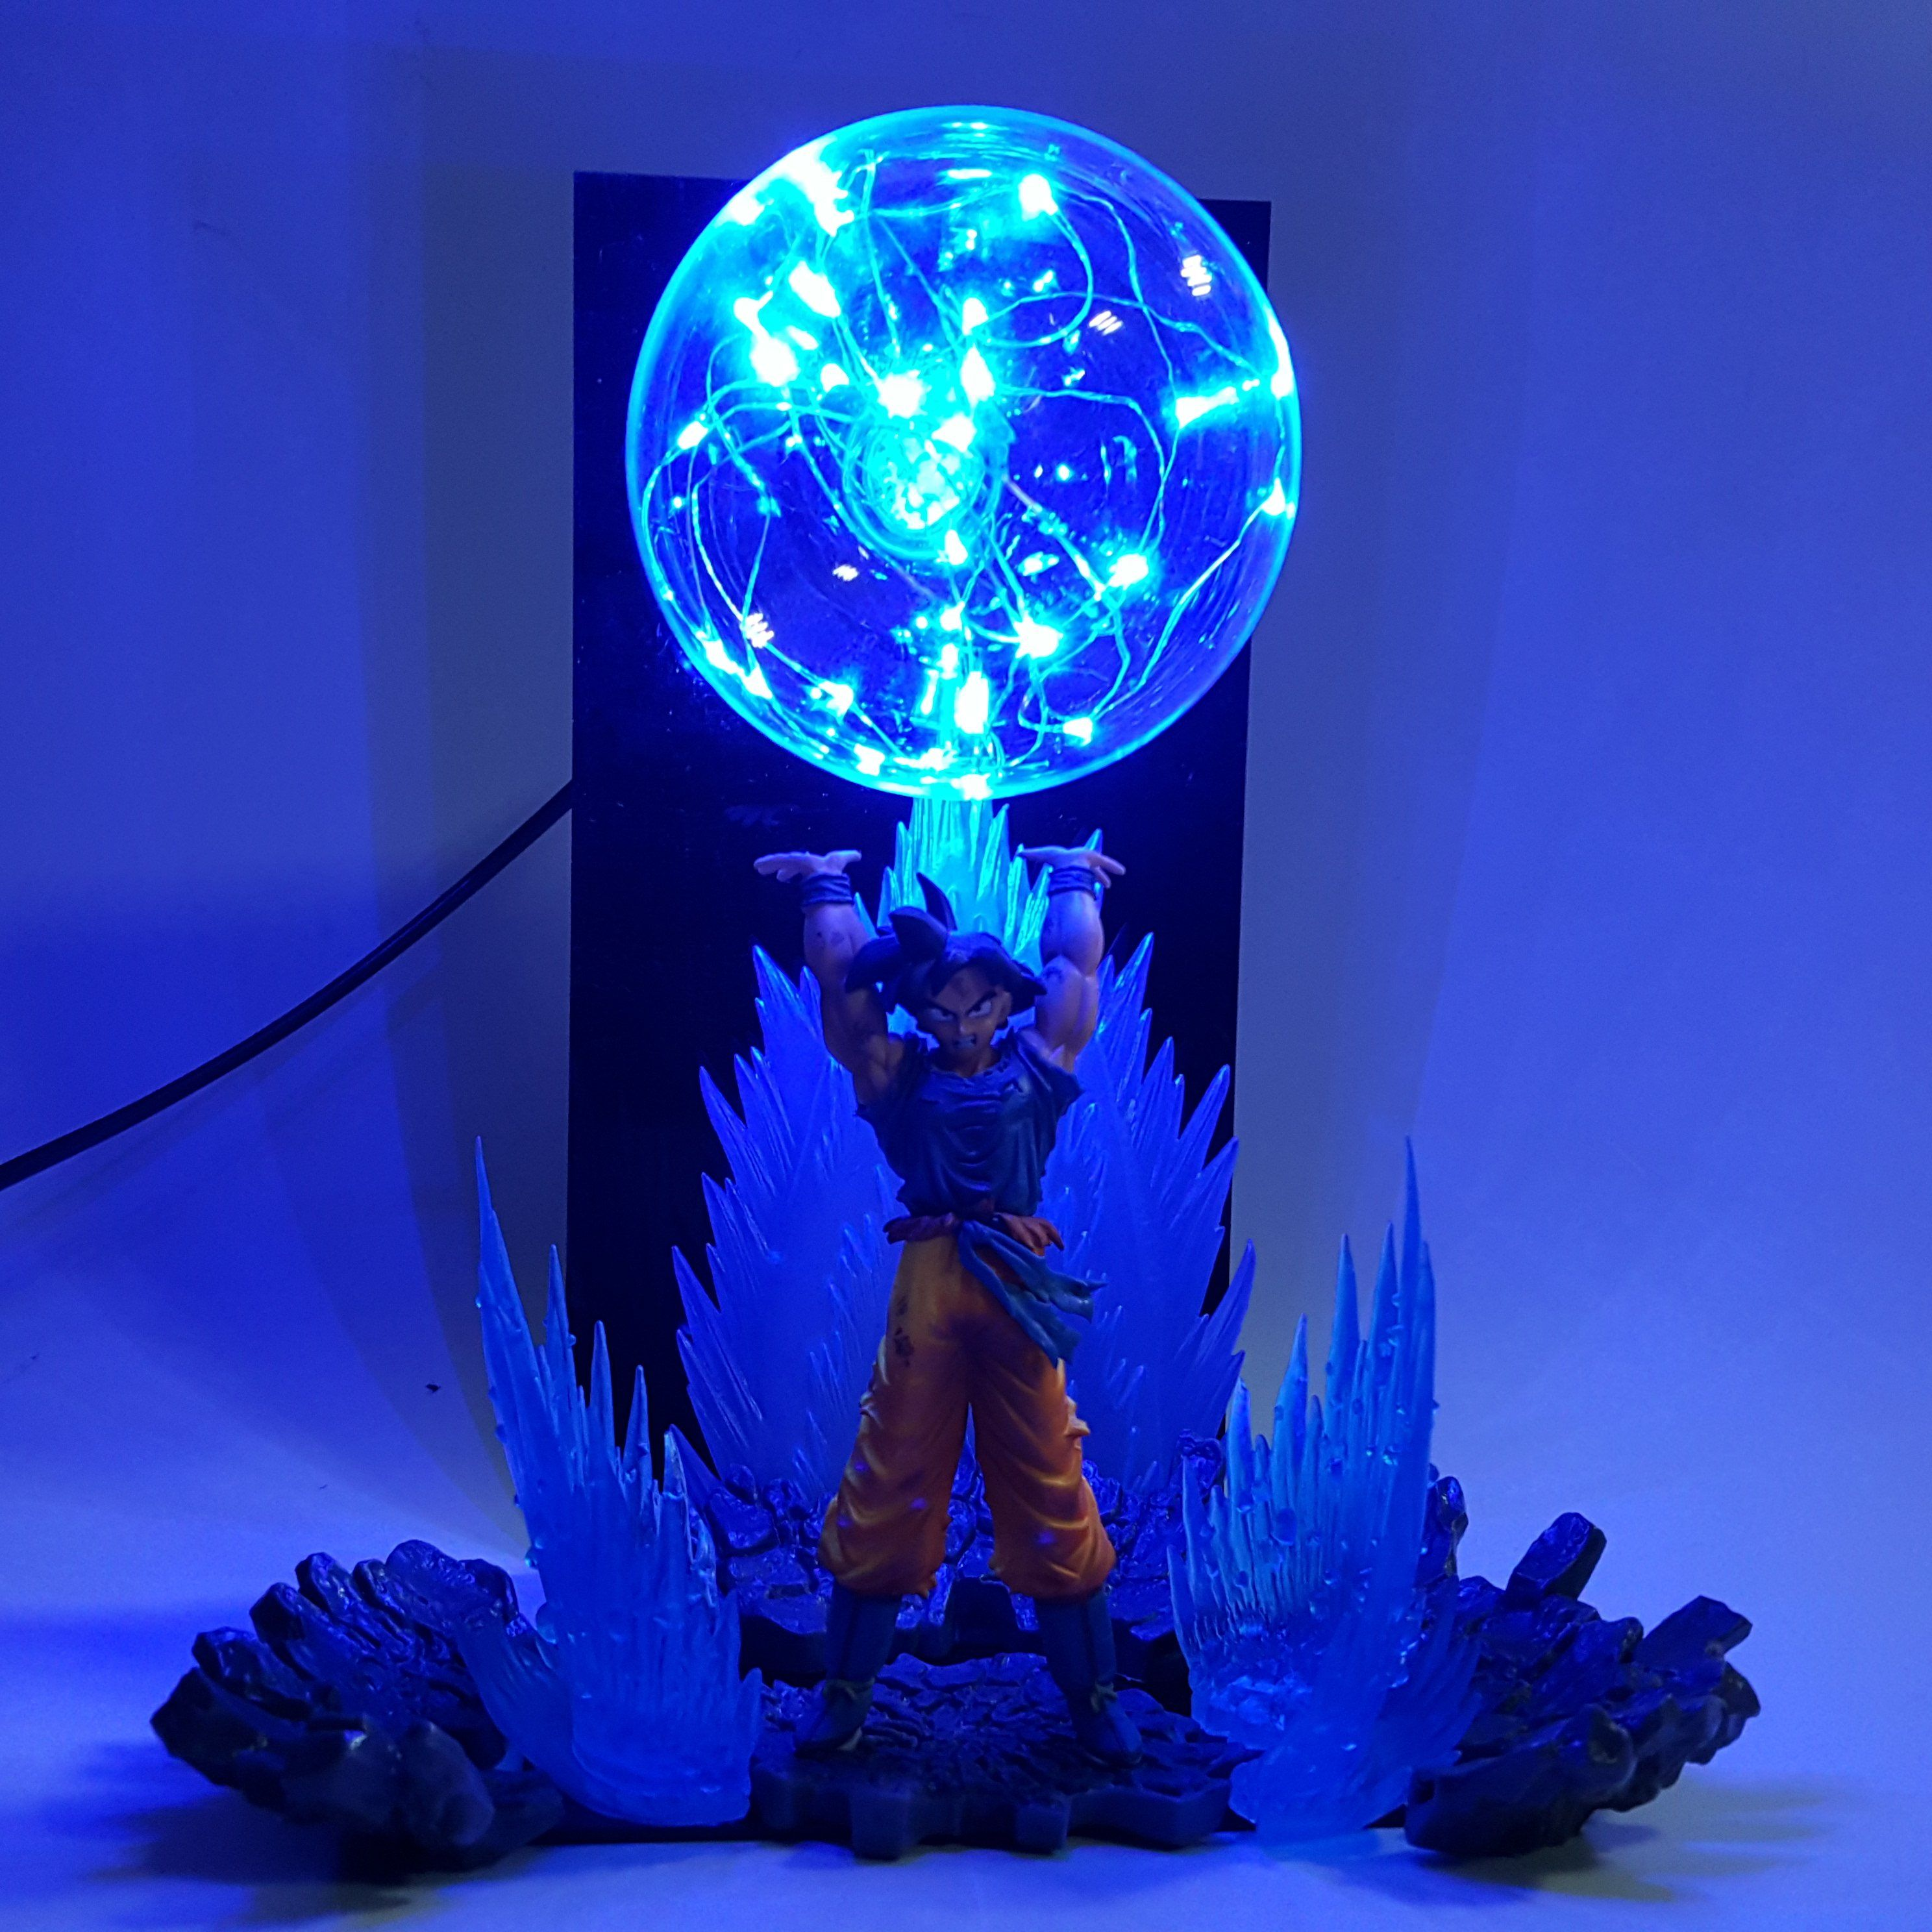 Hot Sale Dragon Ball Z Golden Shenron Crystal Ball Diy Led Set Dragon Ball Super Son Goku Dbz Led Lamp Night Lights Xmas Gift Orders Are Welcome. Led Lamps